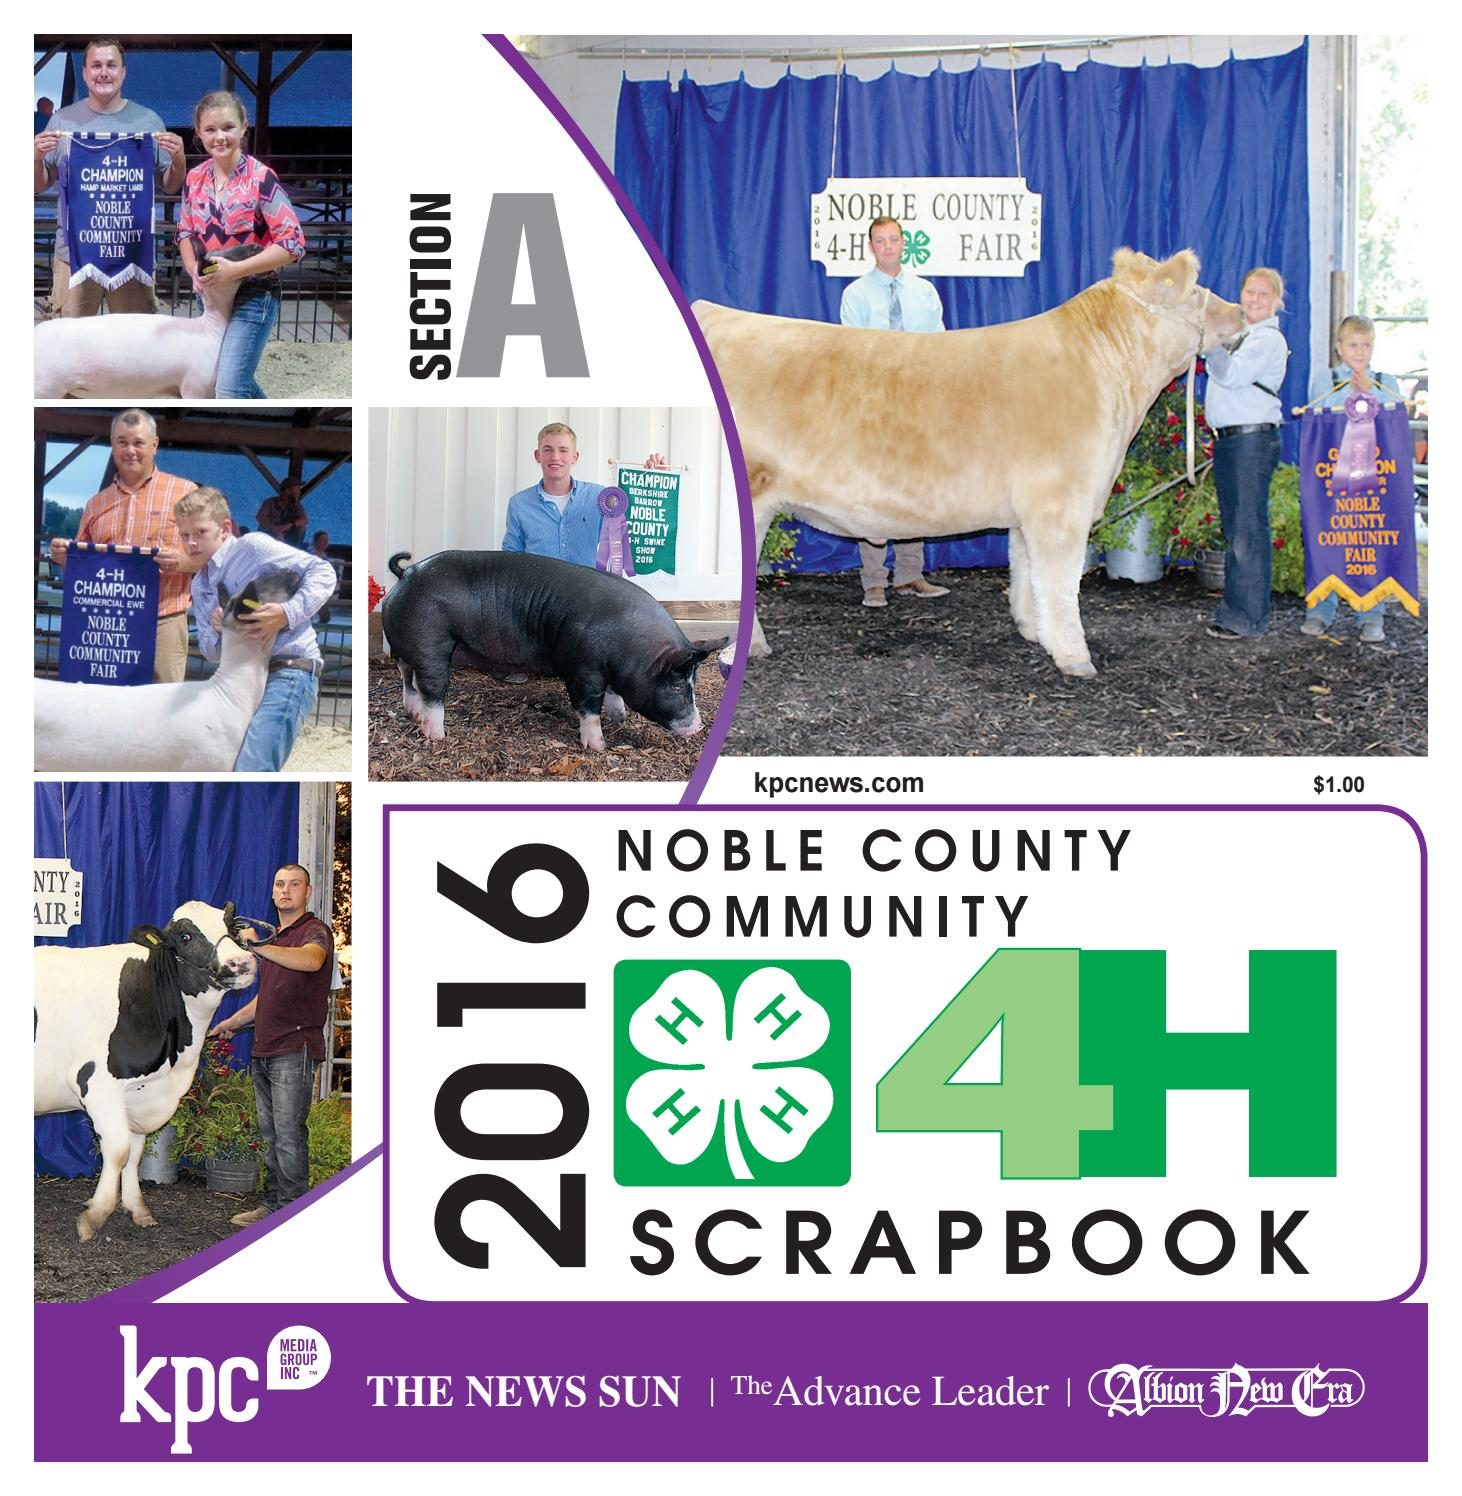 Indiana noble county laotto - 2016 Noble County Community Fair 4 H Scrapbook By Kpc Media Group Issuu